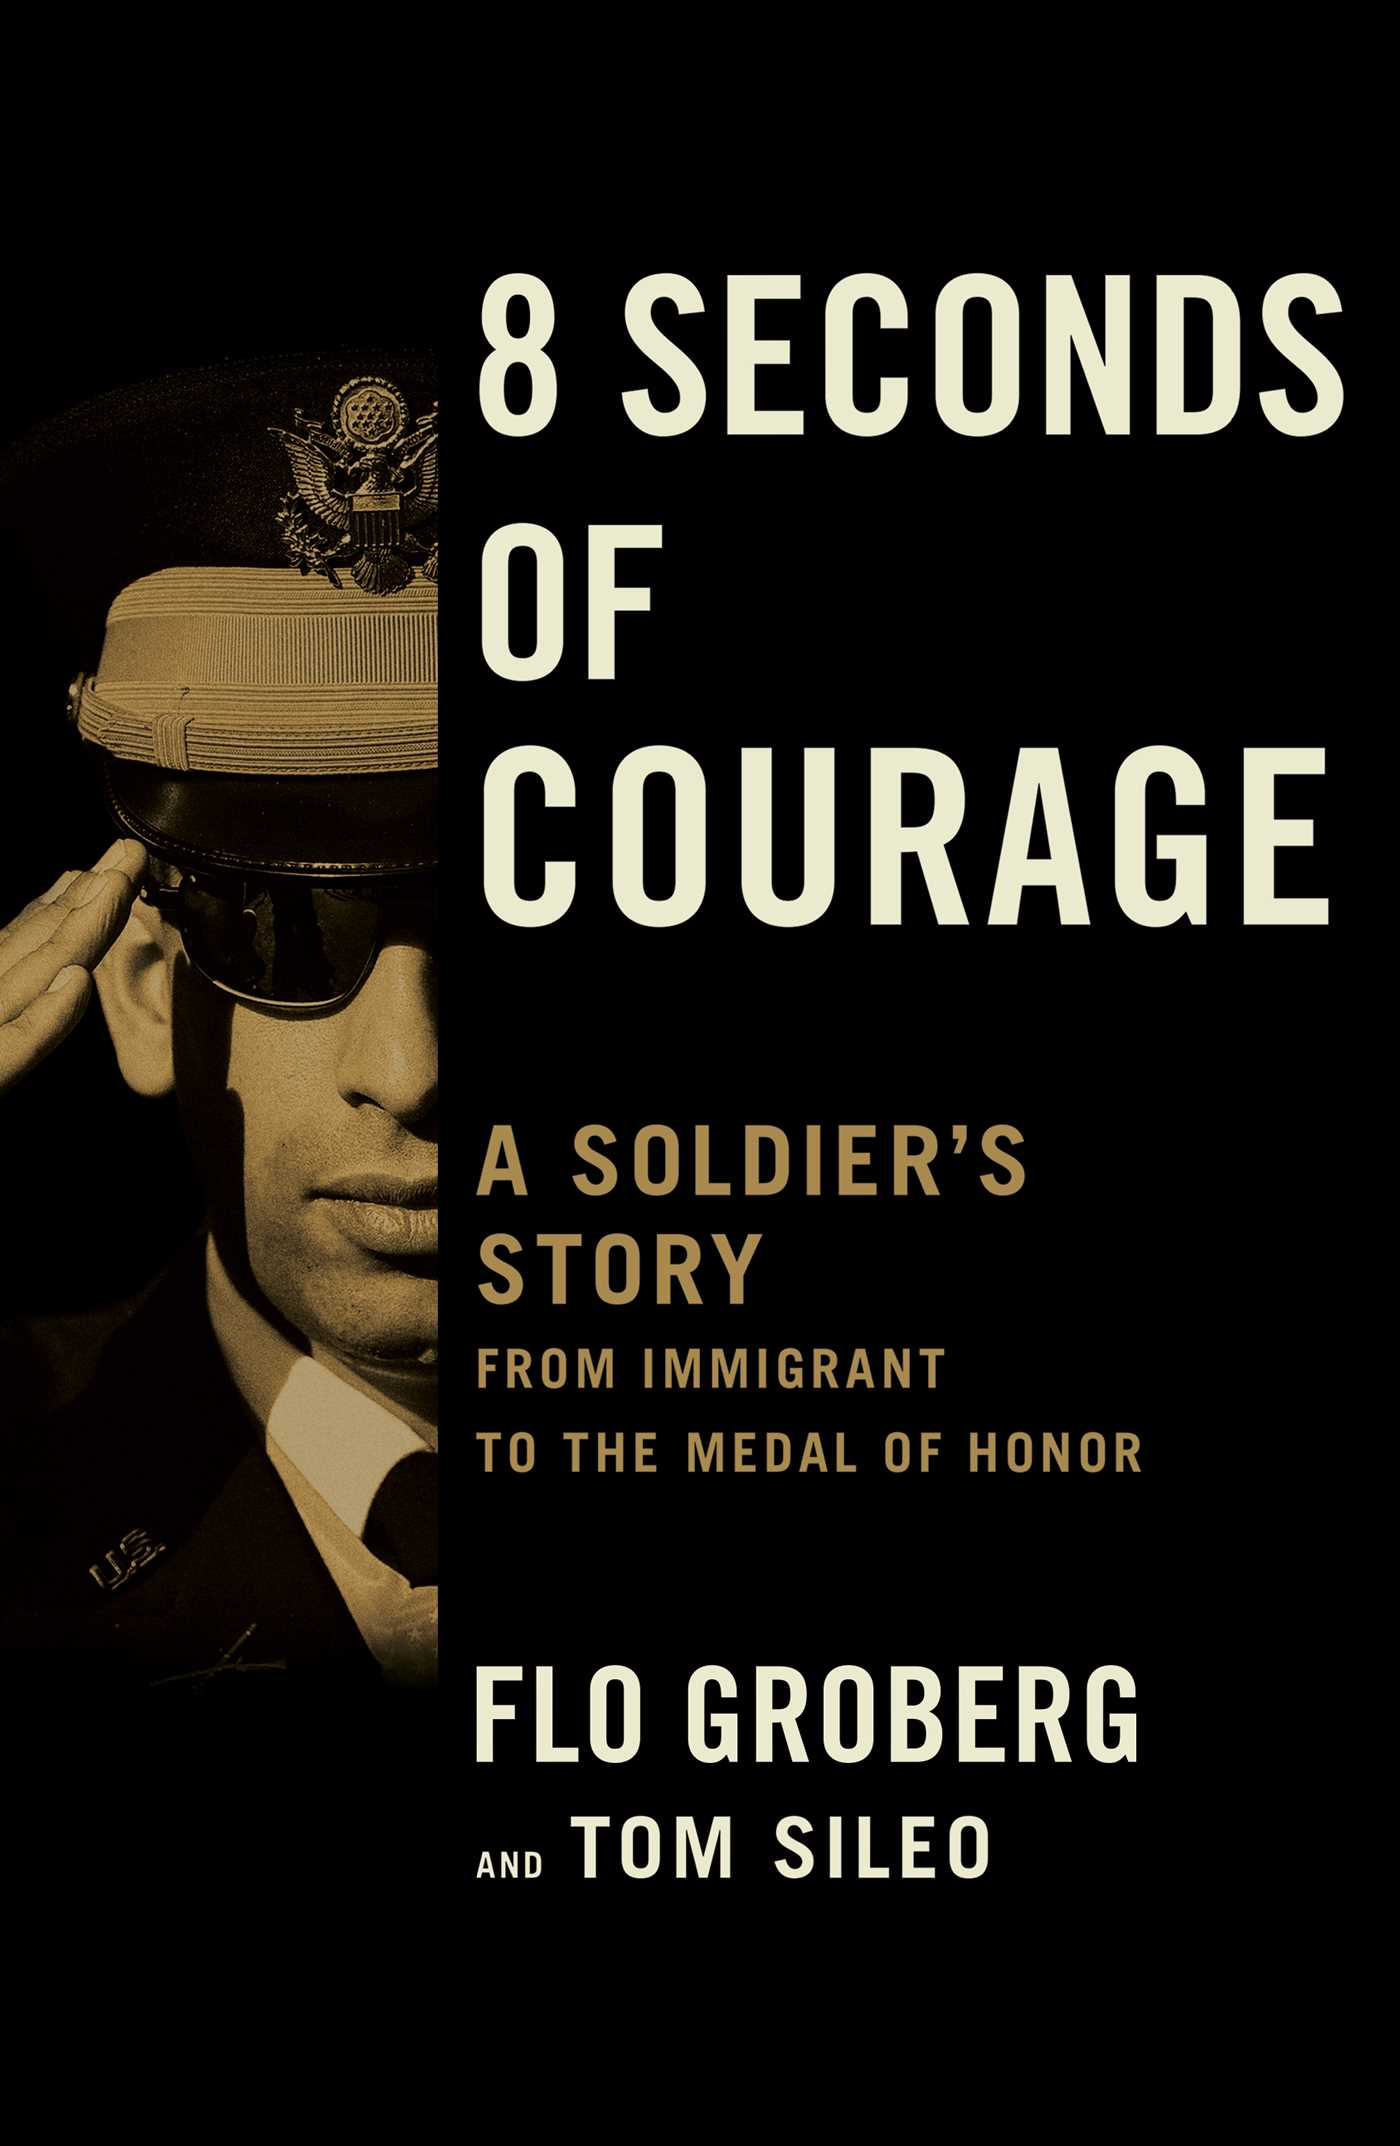 8 seconds of courage 9781501165887 hr